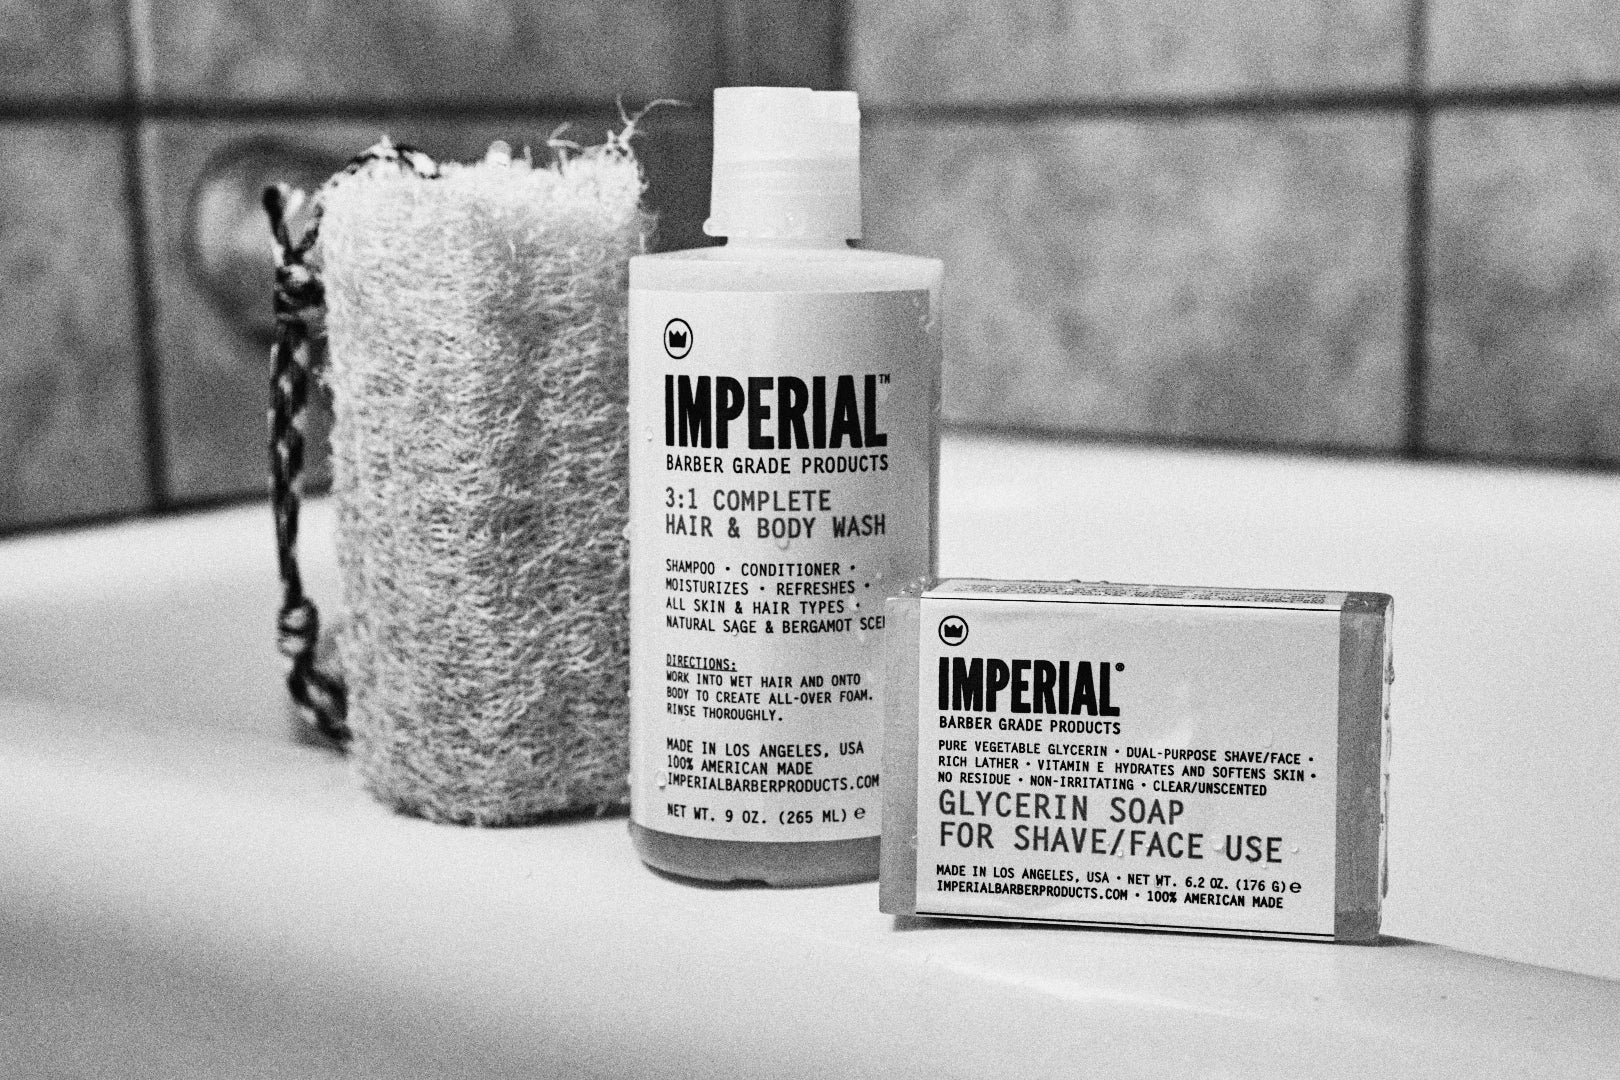 The Panic Room presents Imperial Glycerin Shave Soap